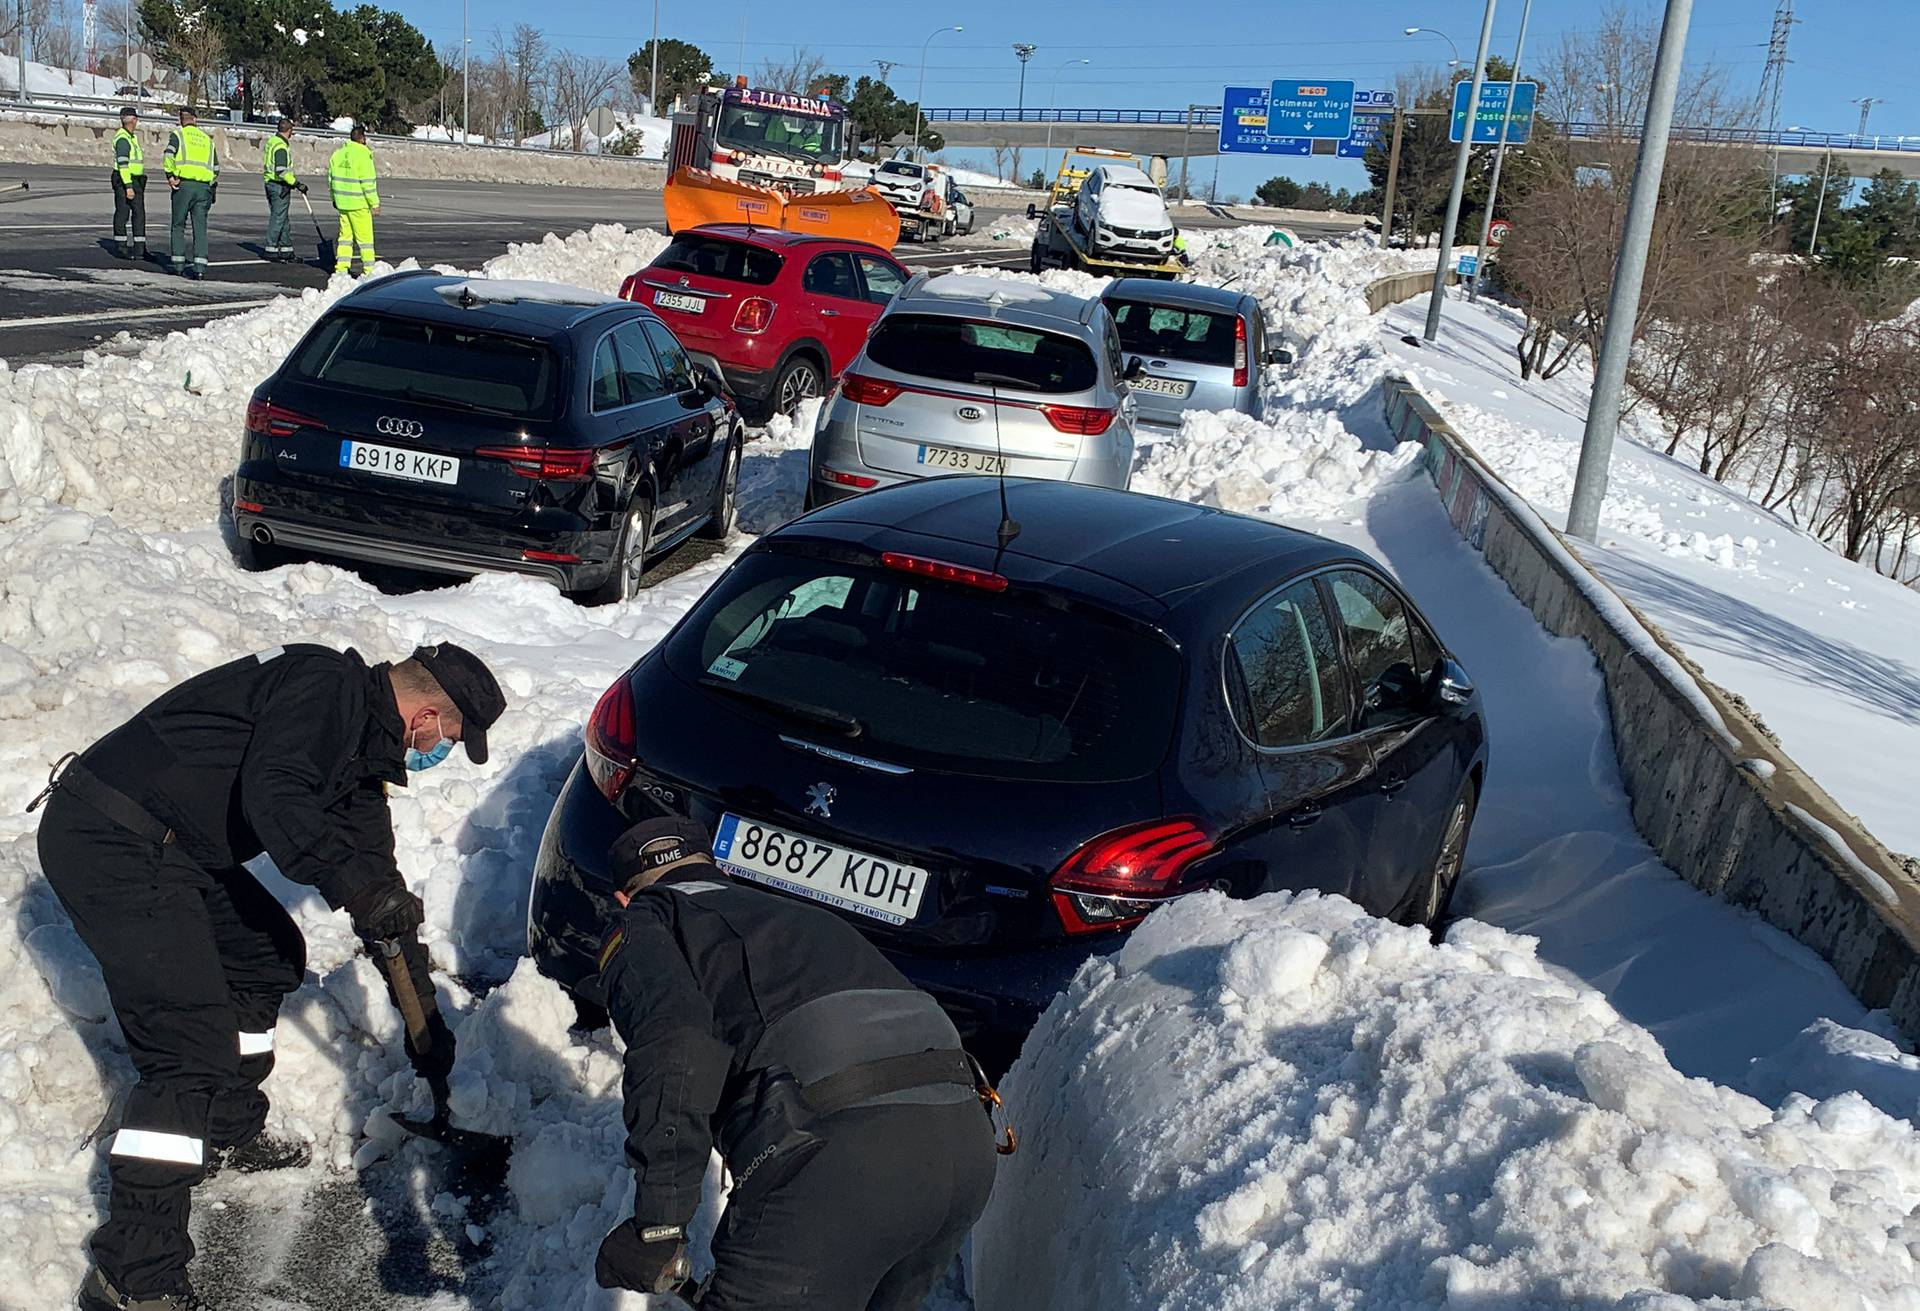 Members of Spain's military unit (UME) shovel snow to open a pass next to cars accumulated on M-40 highway after heavy snowfall in Madrid